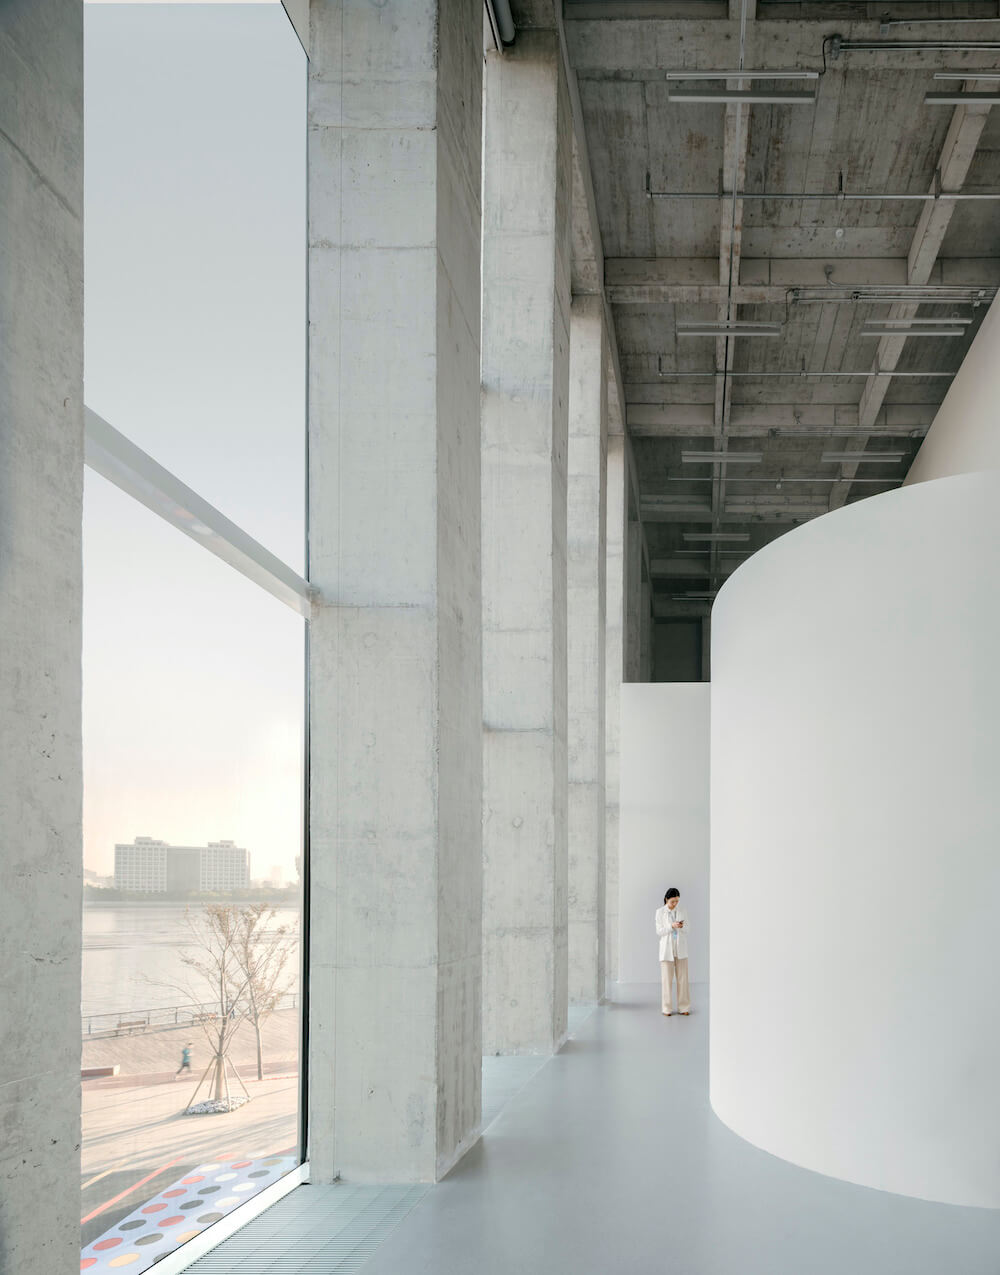 A hallway by the windows at the West Bund Museum